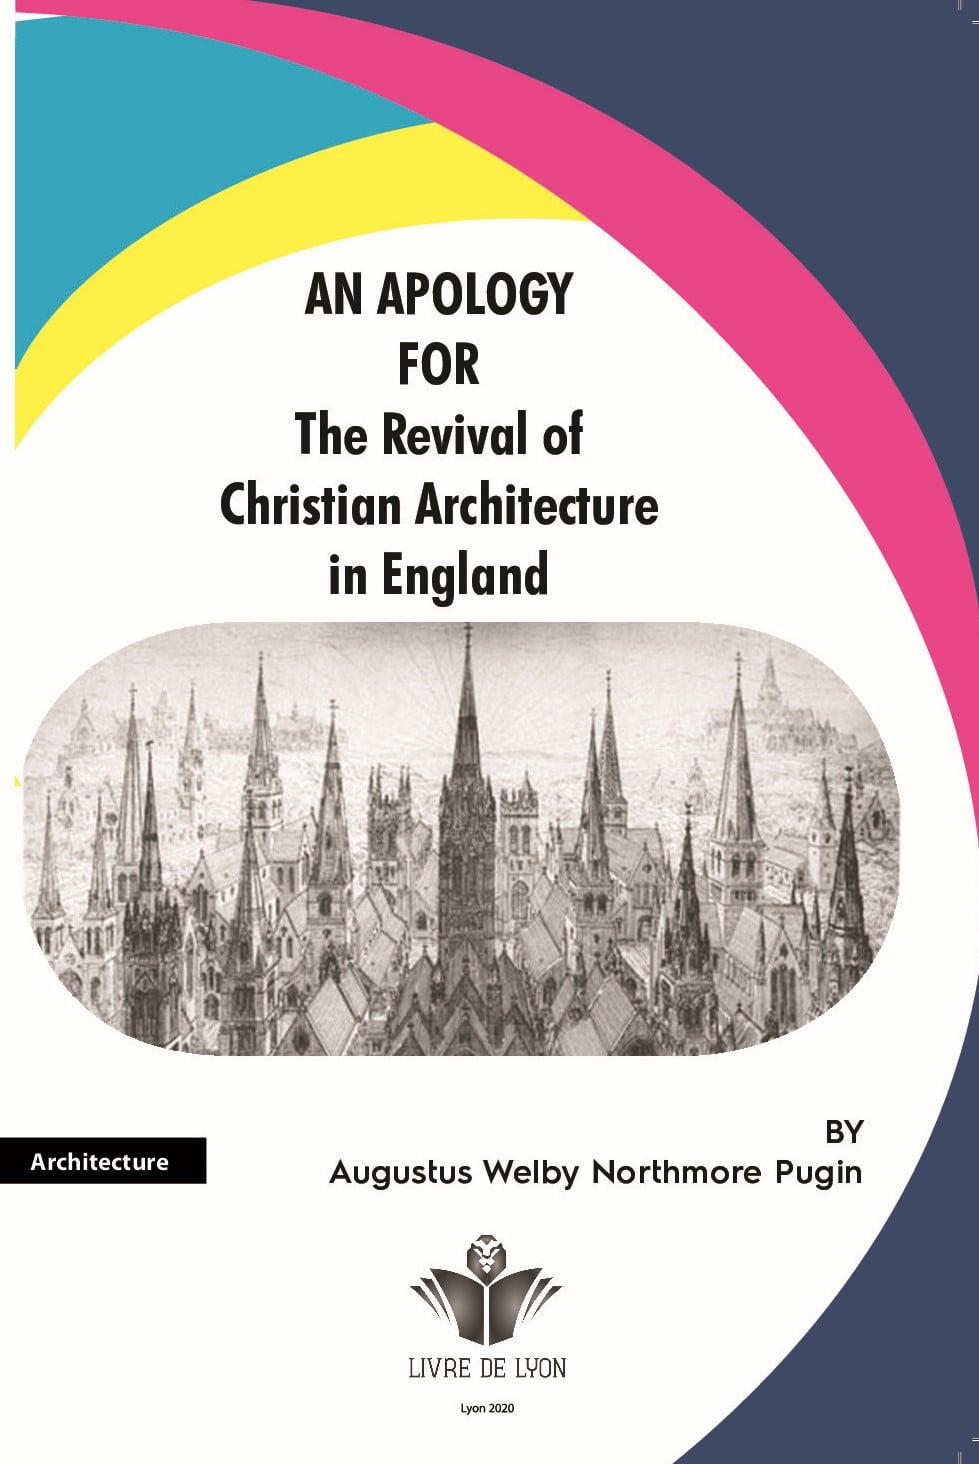 An Apology for the Revival of Christian Architecture in England